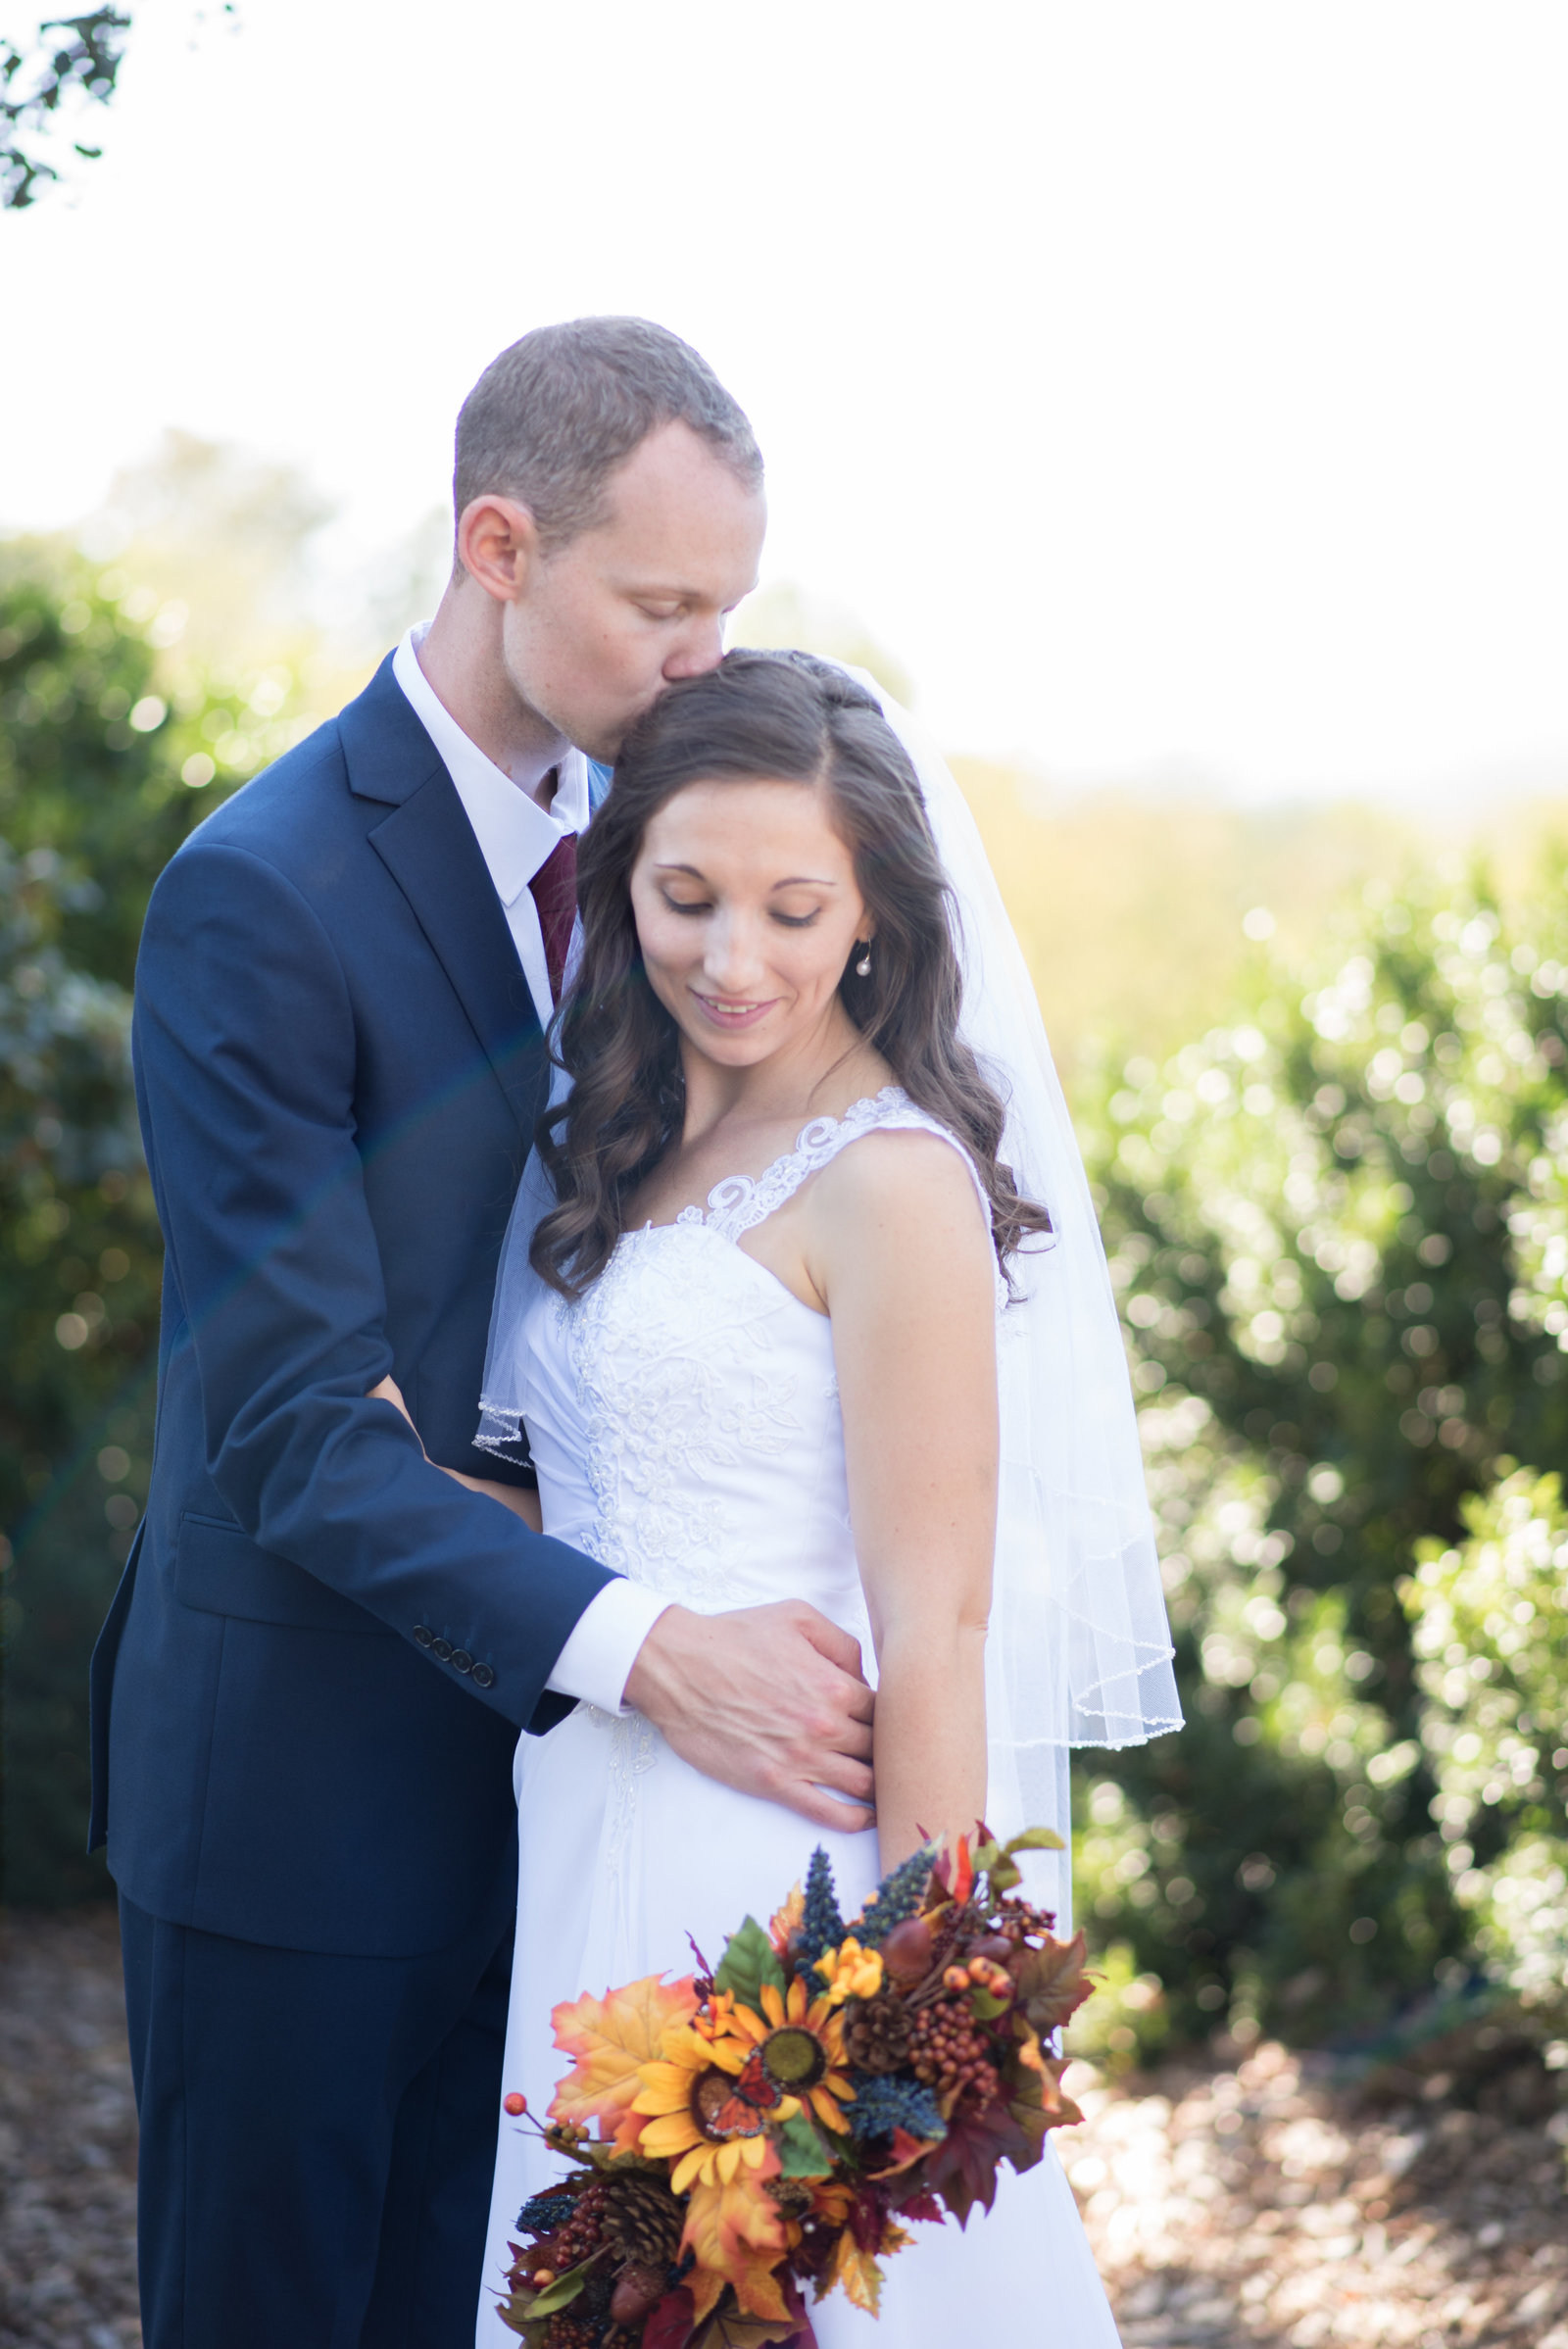 Angie+Jesse-Wolftrap-Farm-Wedding-VA-MermaidlakePhotography-638-39